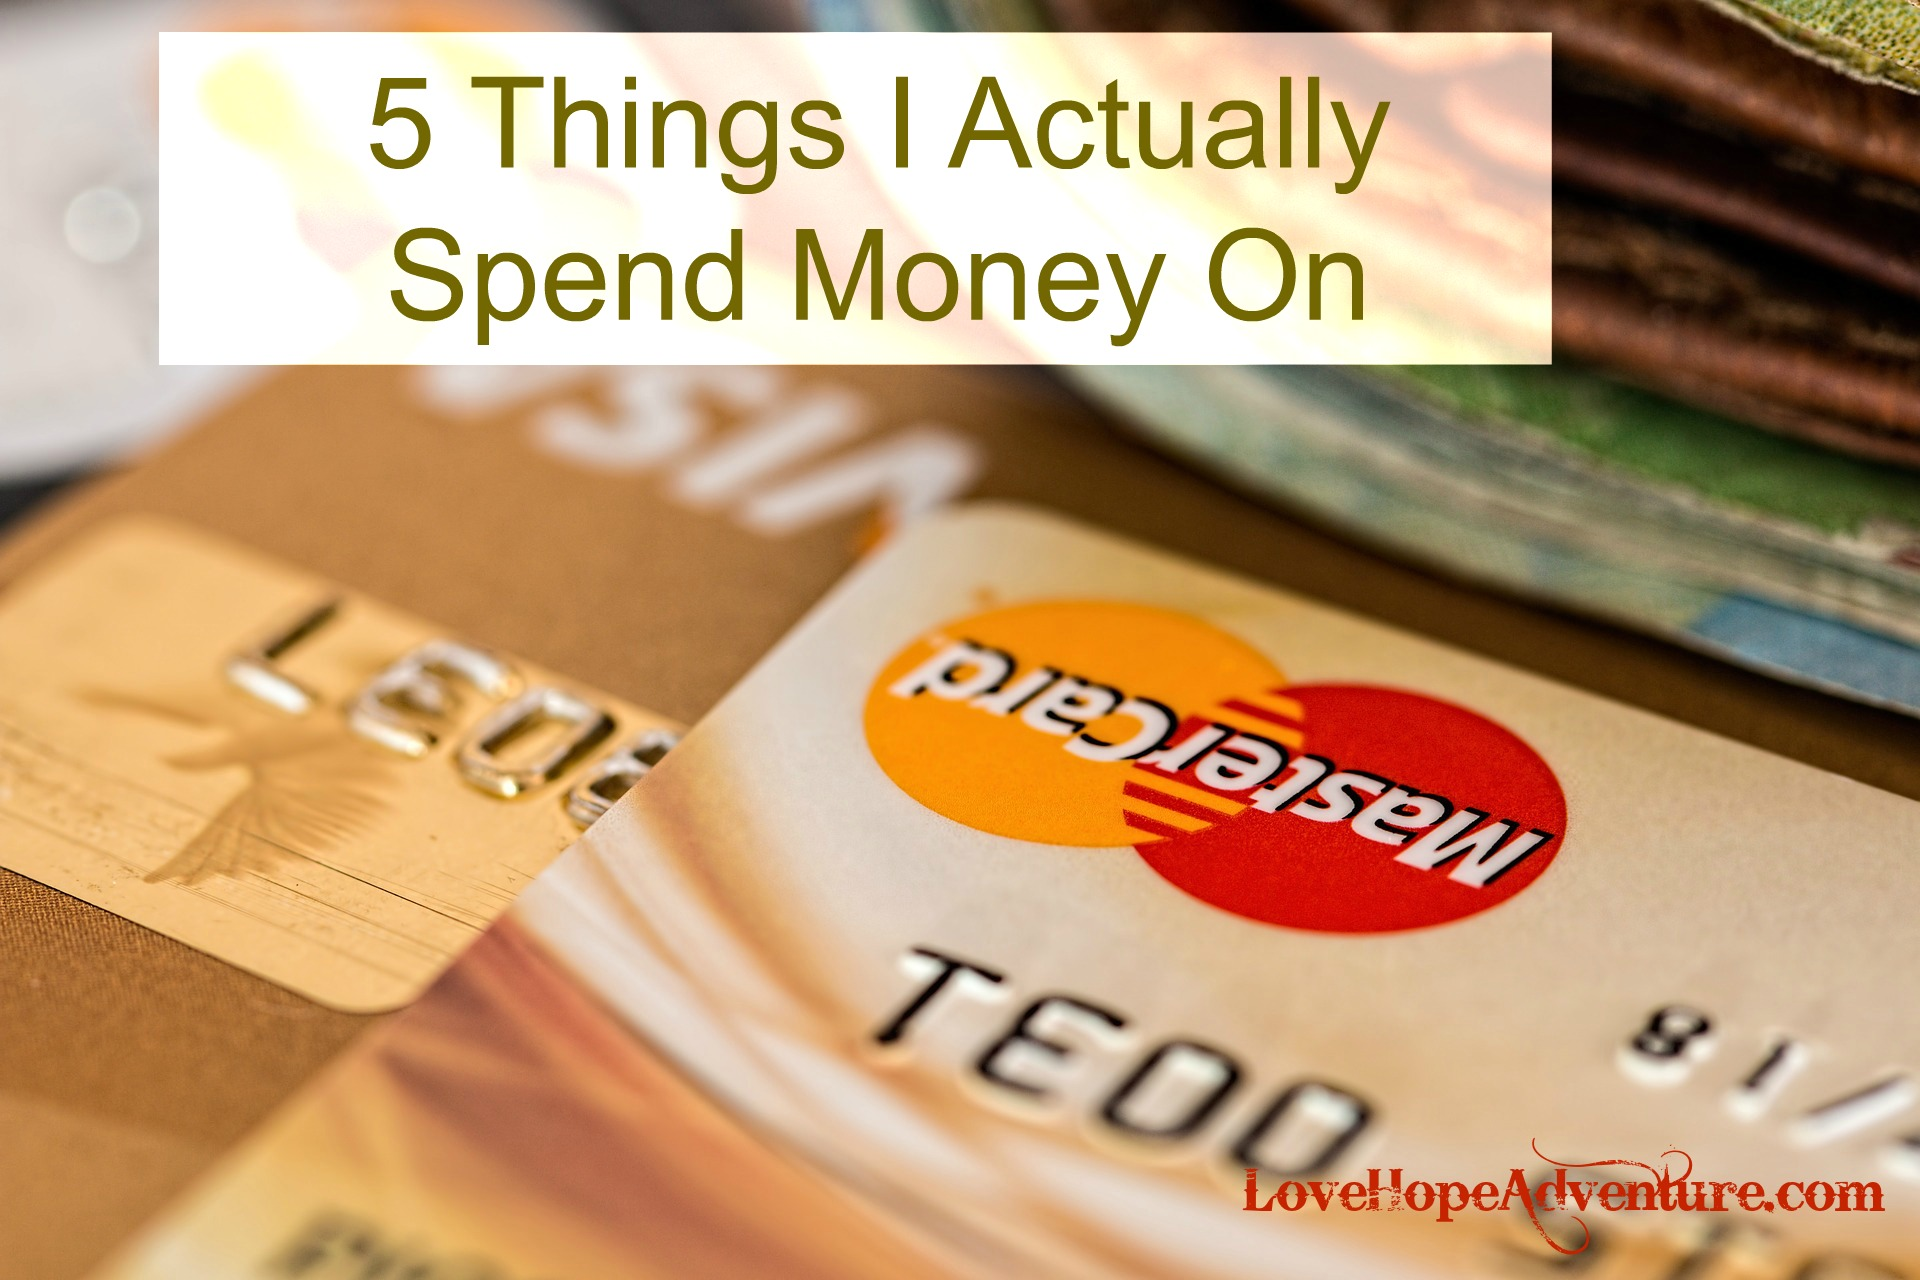 5 Things I Actually Spend Money On